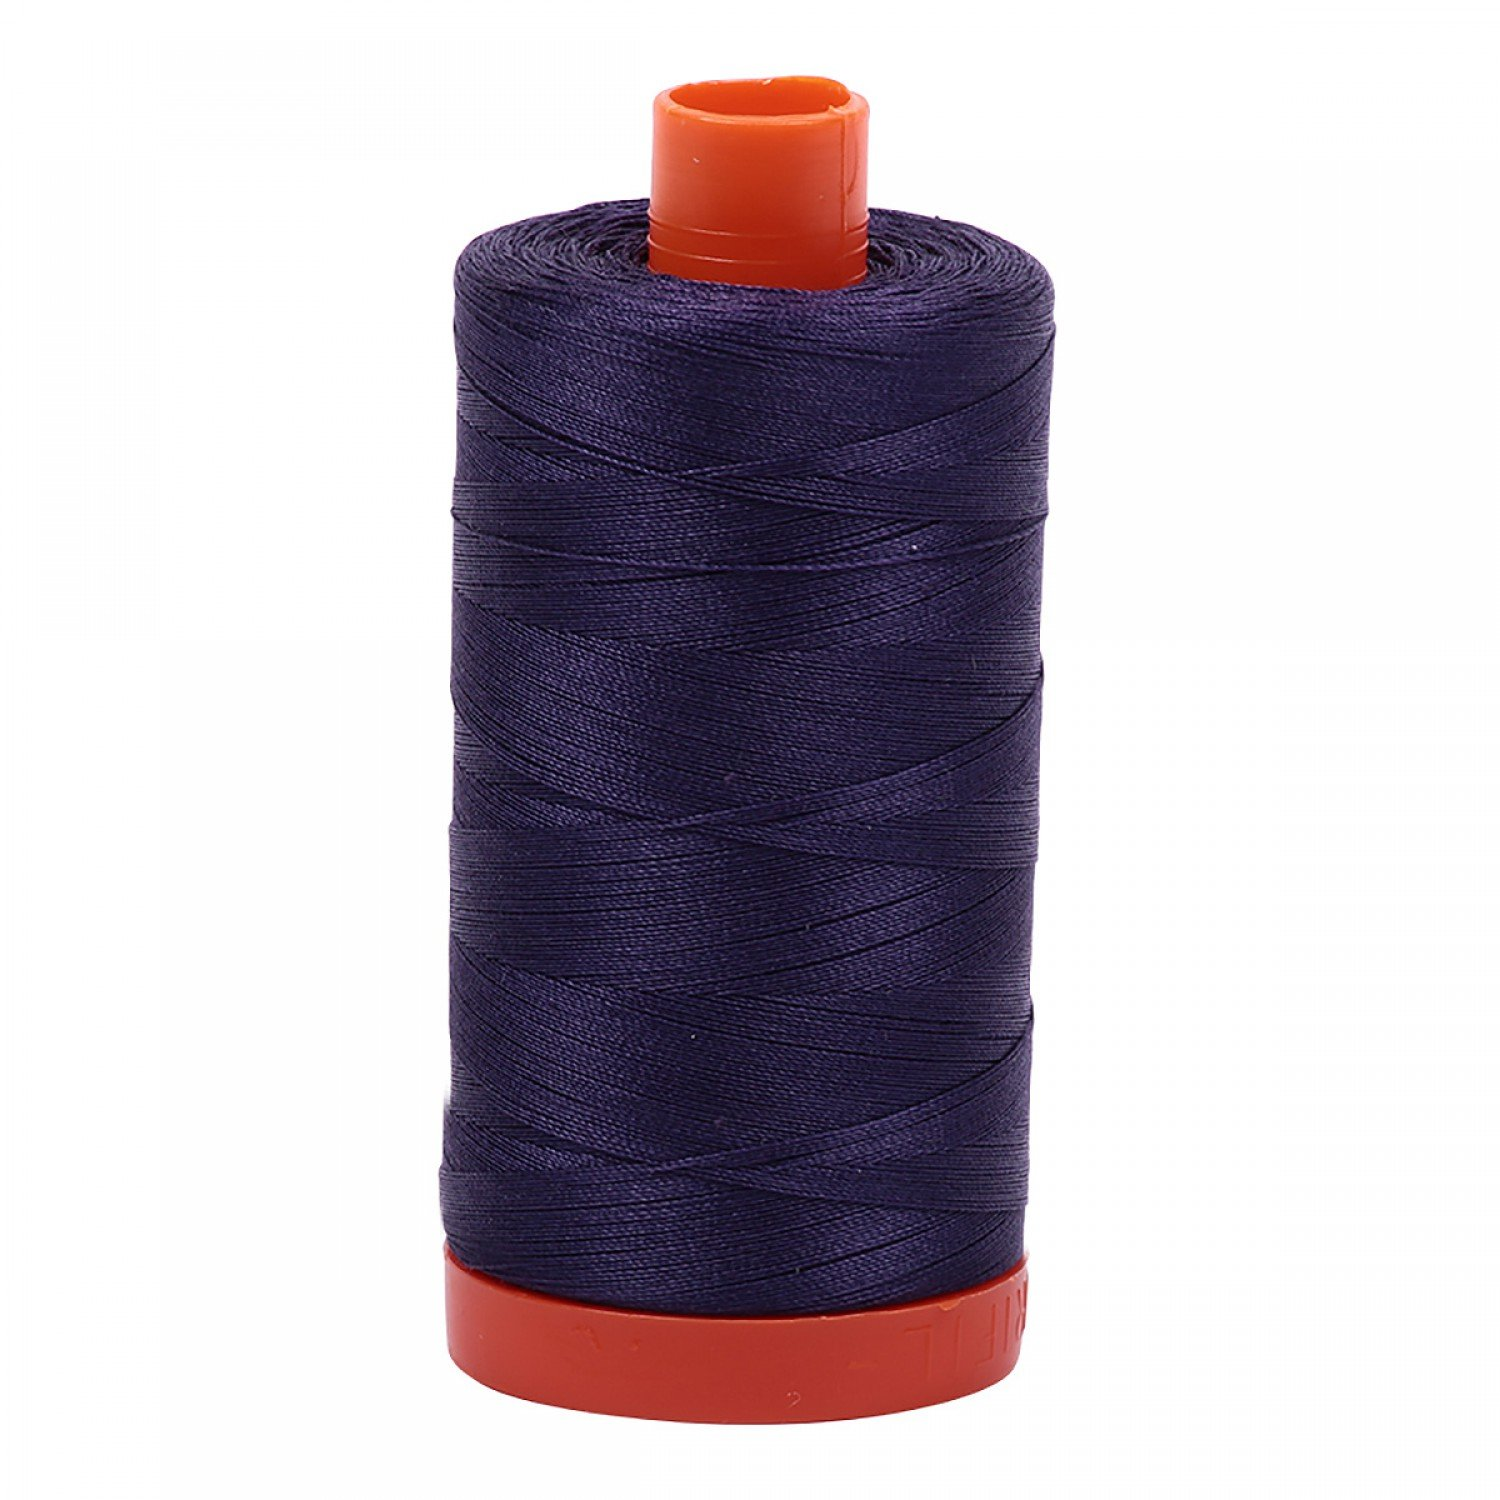 Aurifil 2581 - Mako Cotton Thread Solid 50wt 1422yds Dark Dusty Grape